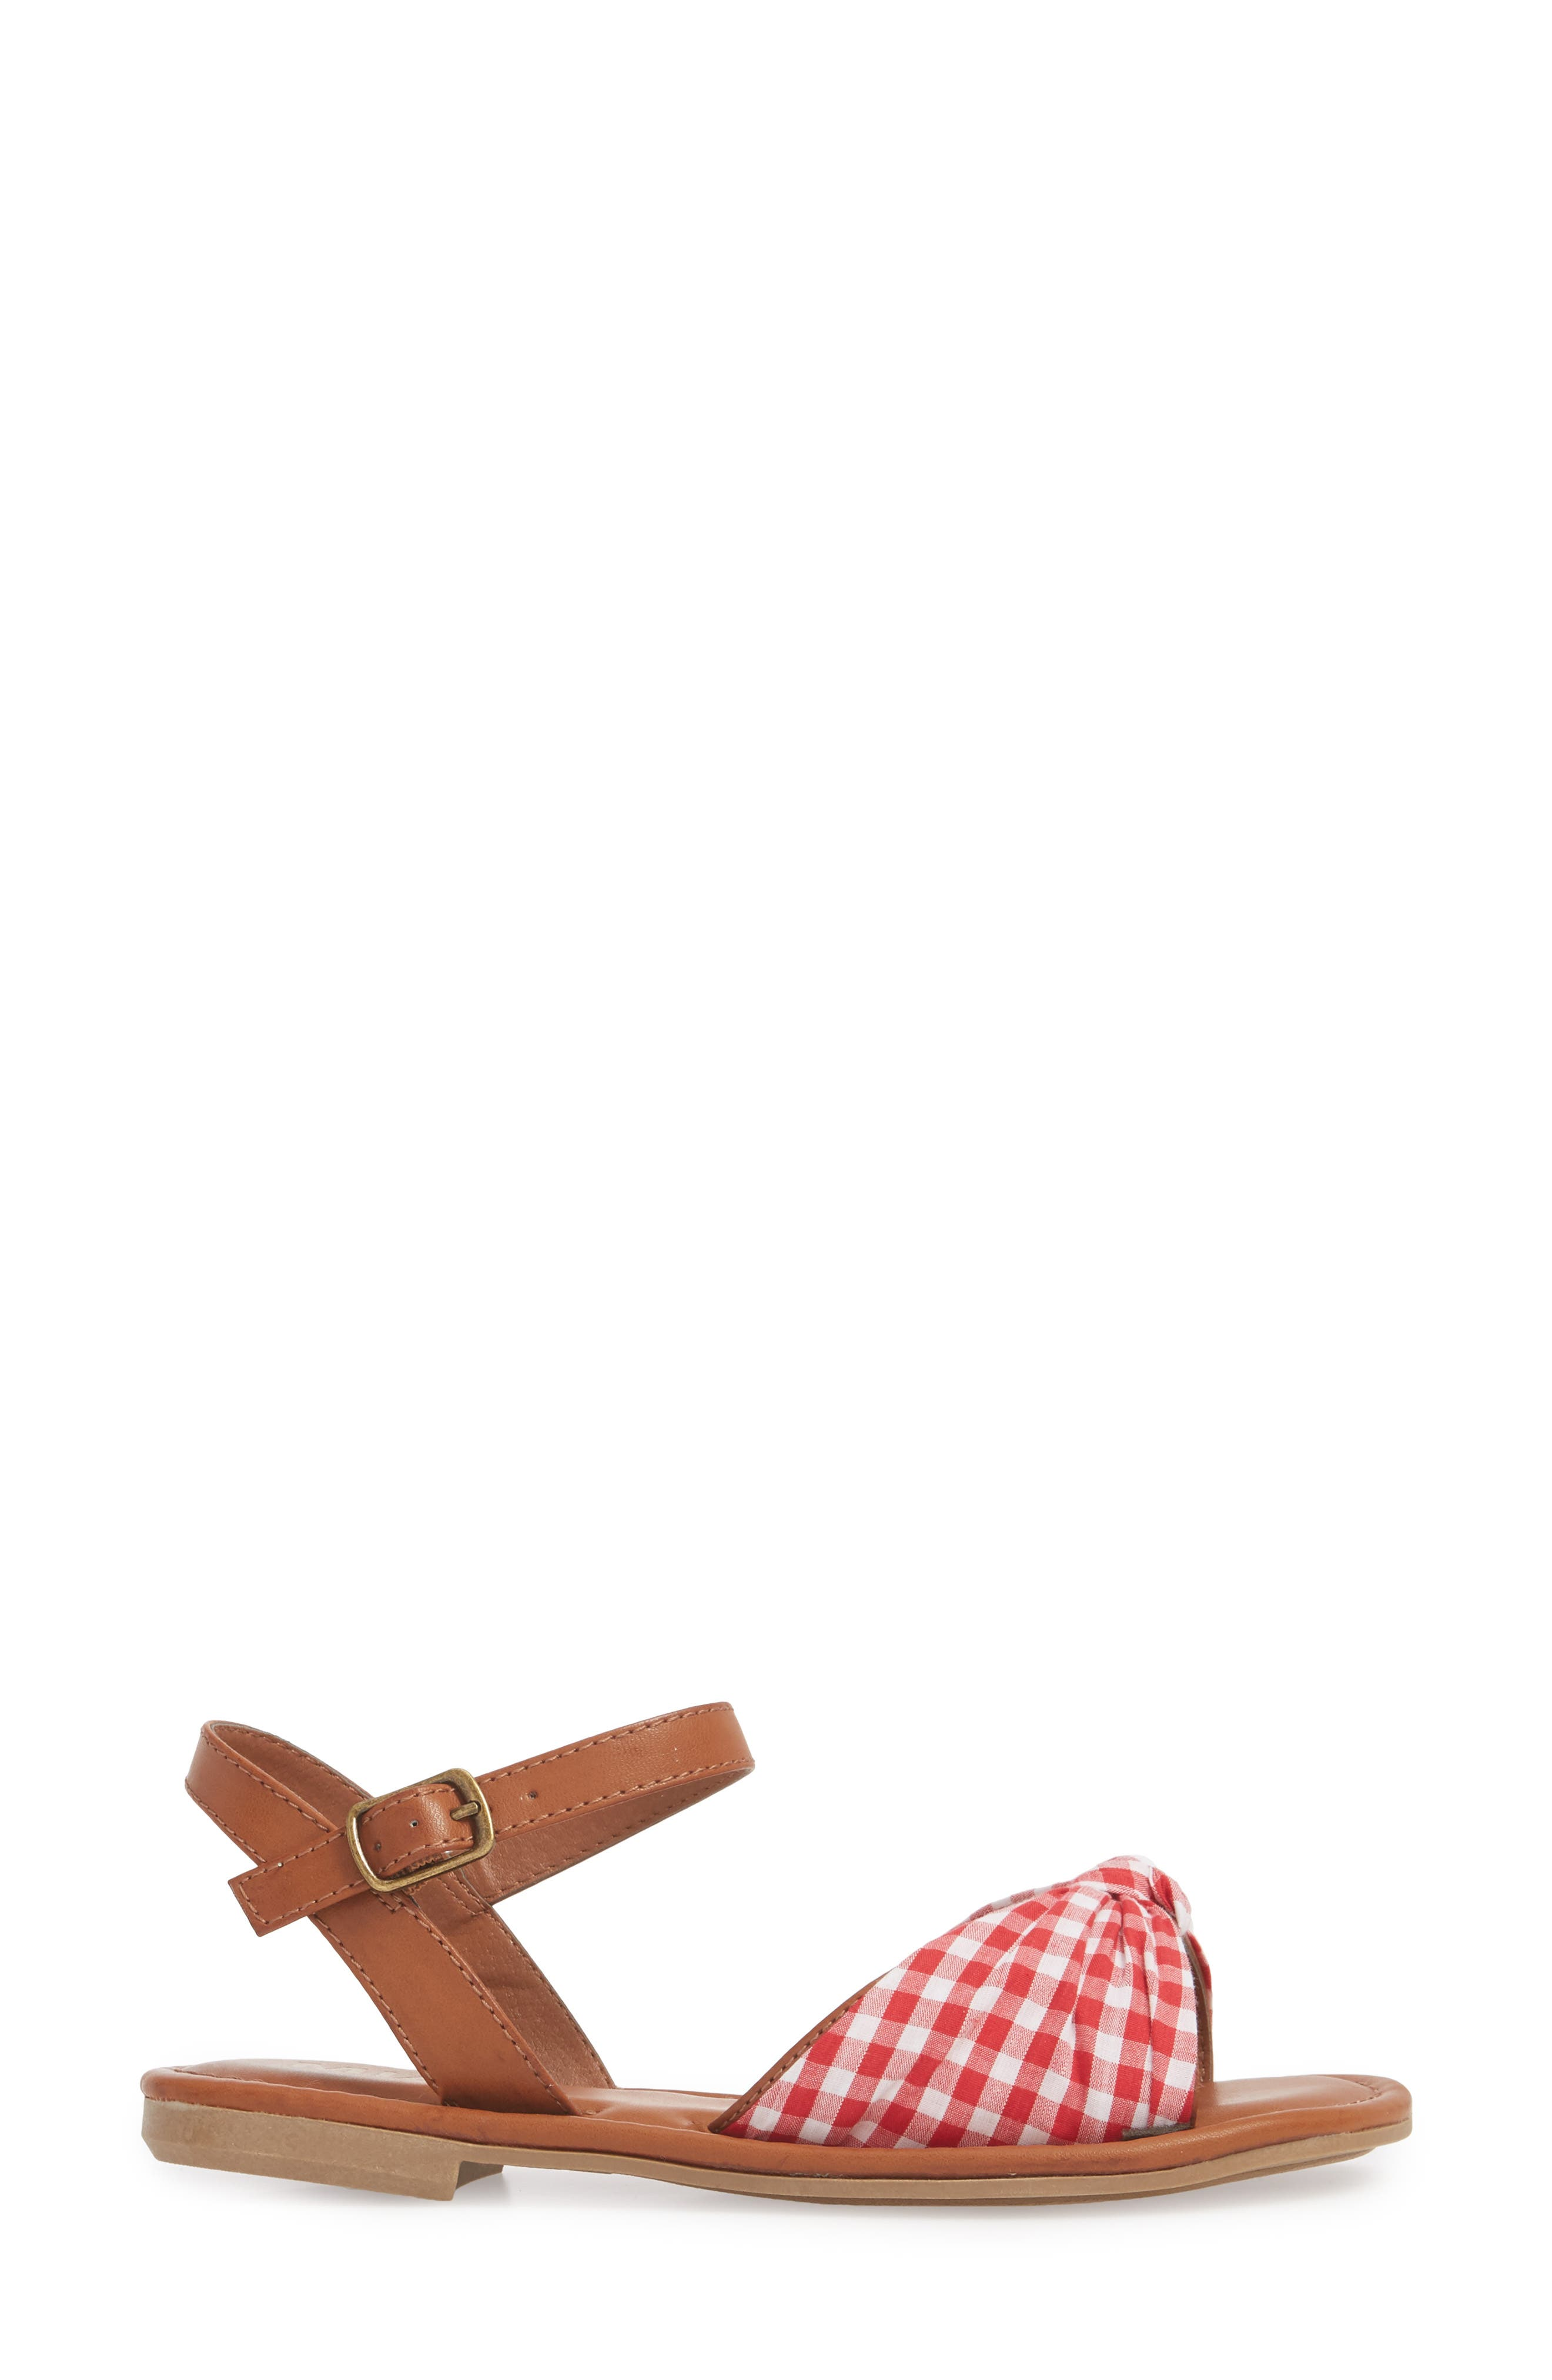 Neala Bow Sandal,                             Alternate thumbnail 3, color,                             Red/ White Fabric